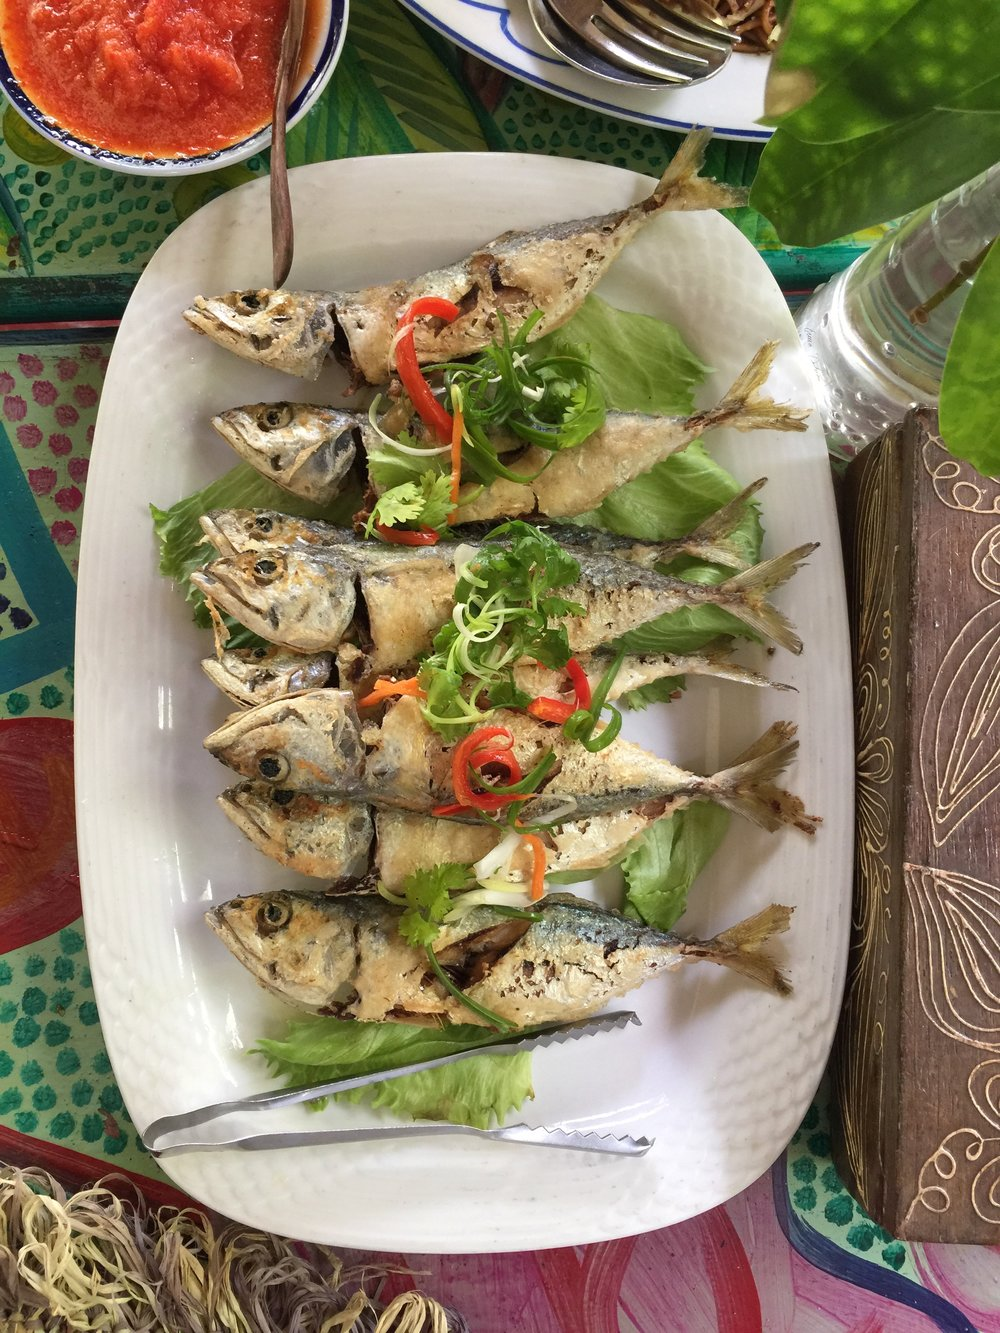 Fresh fish cooked simply local Malaysian style